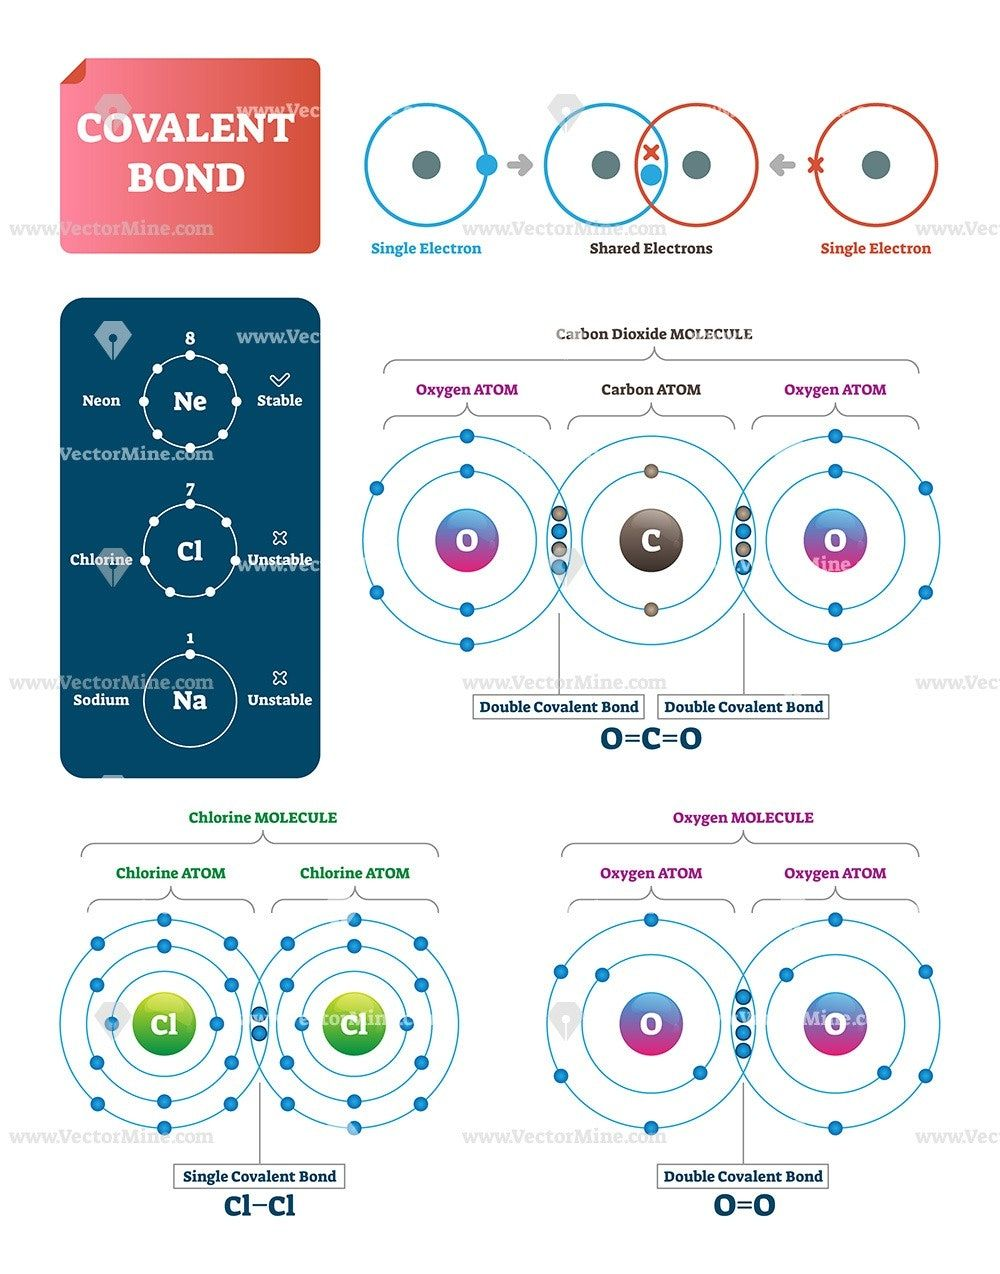 Covalent Bond Vector Illustration Process Explanation Labeled Diagram Molecular Bond With Single And In 2020 Covalent Bonding Chemistry Education Teaching Chemistry